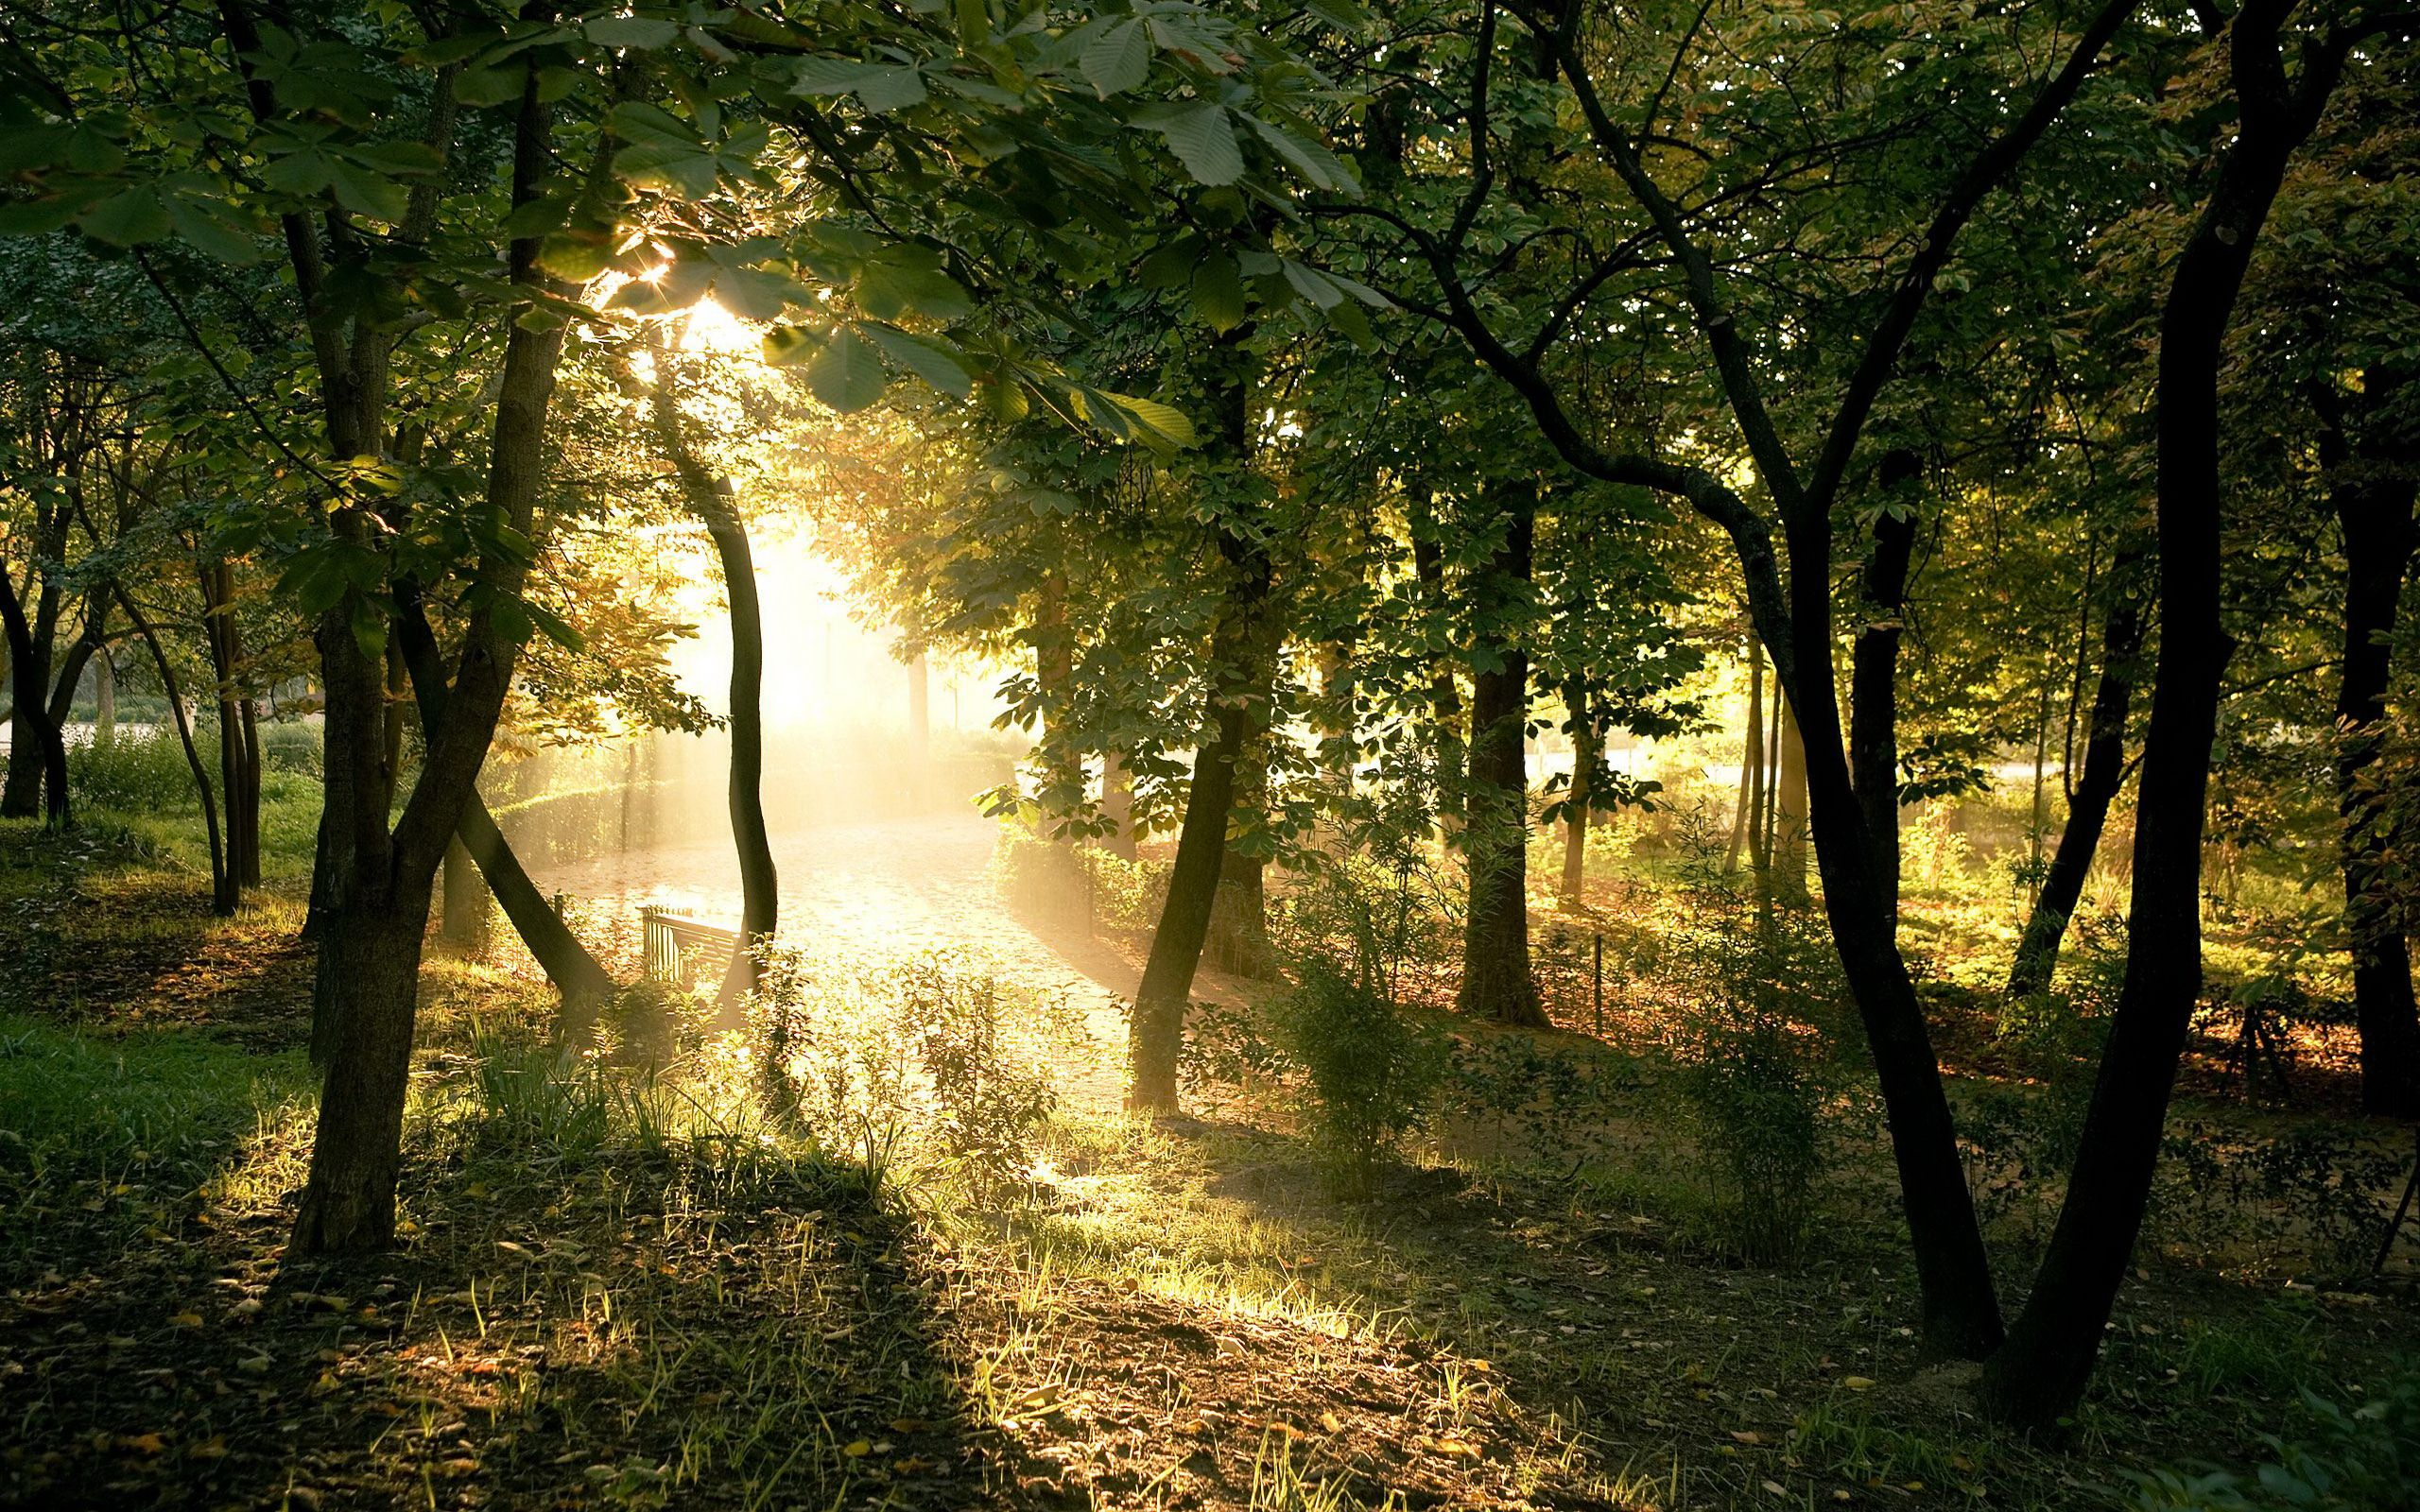 Summer Forest Beautiful Sun Rays And Trees Forest Wallpaper Tree Forest Tree Wallpaper Beautiful landscape tree plants sun rays